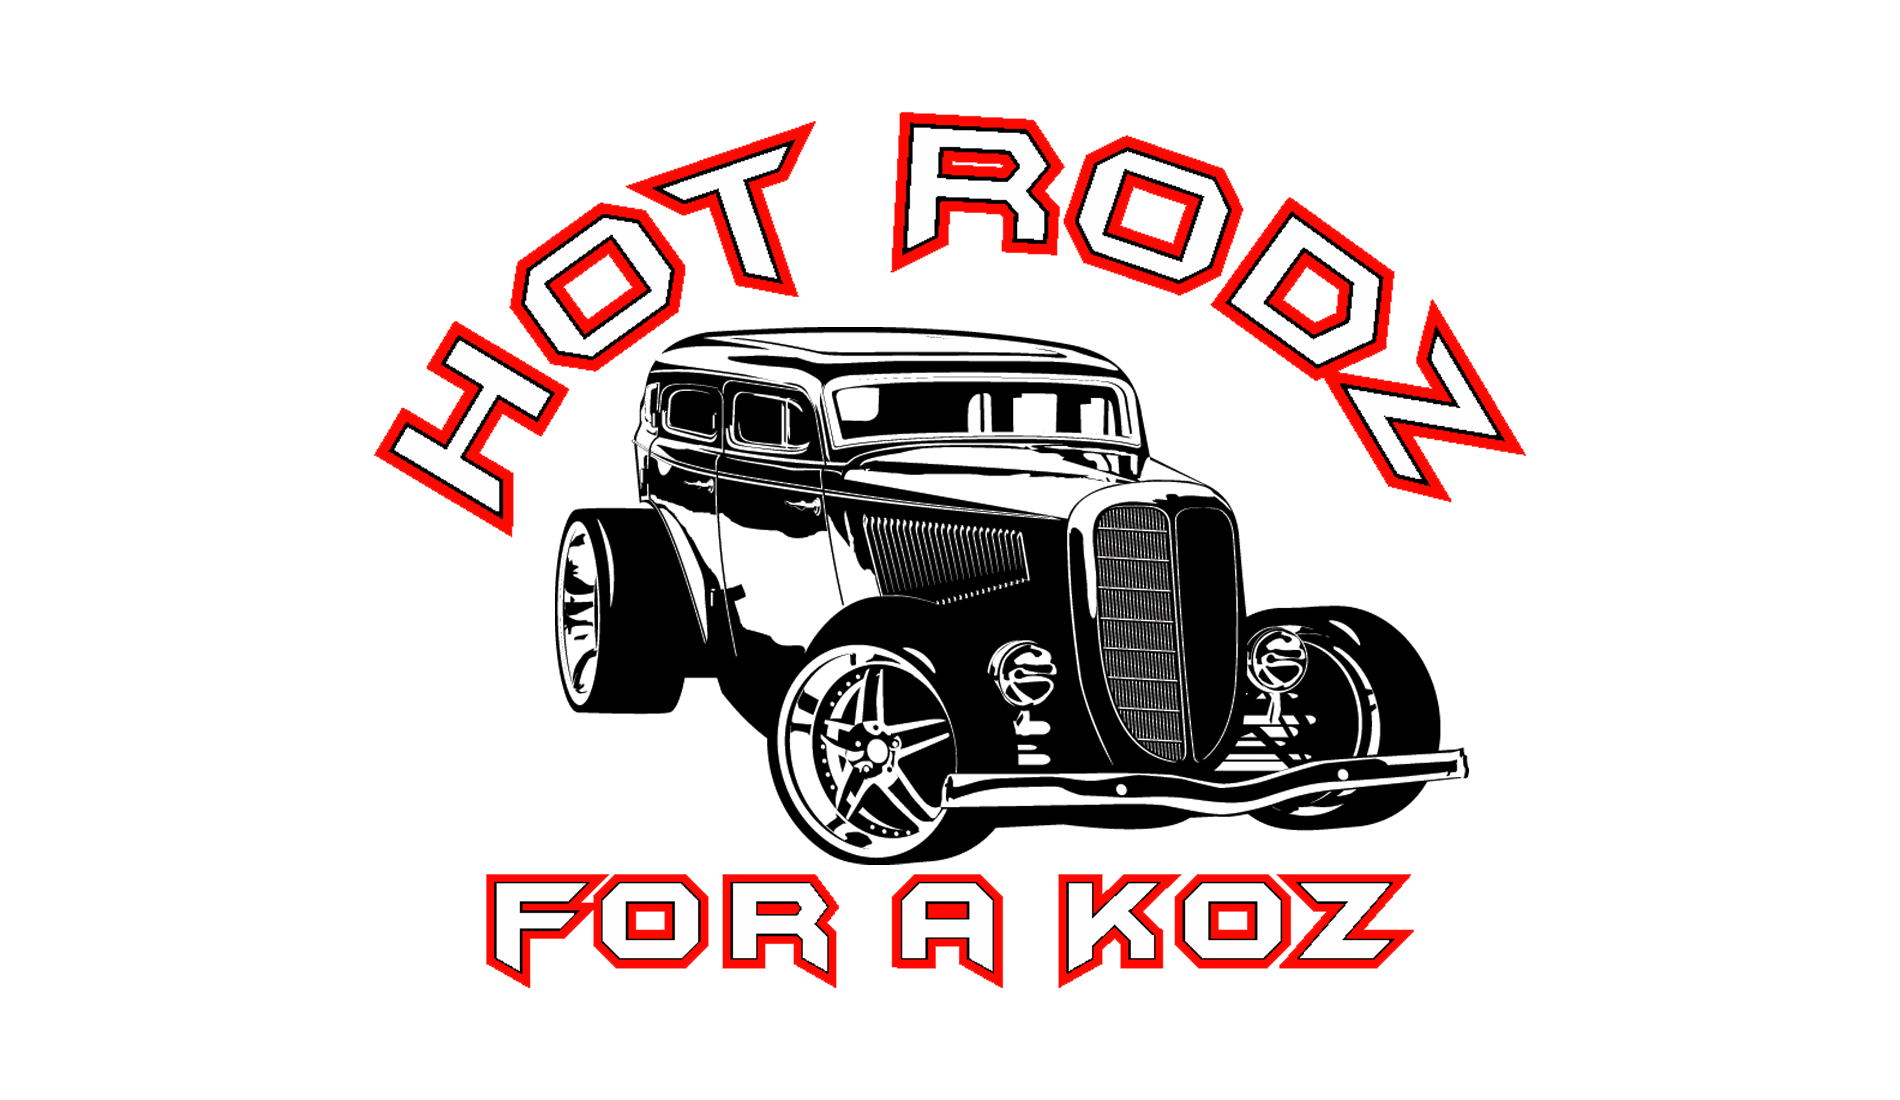 hot rodz for a koz logo